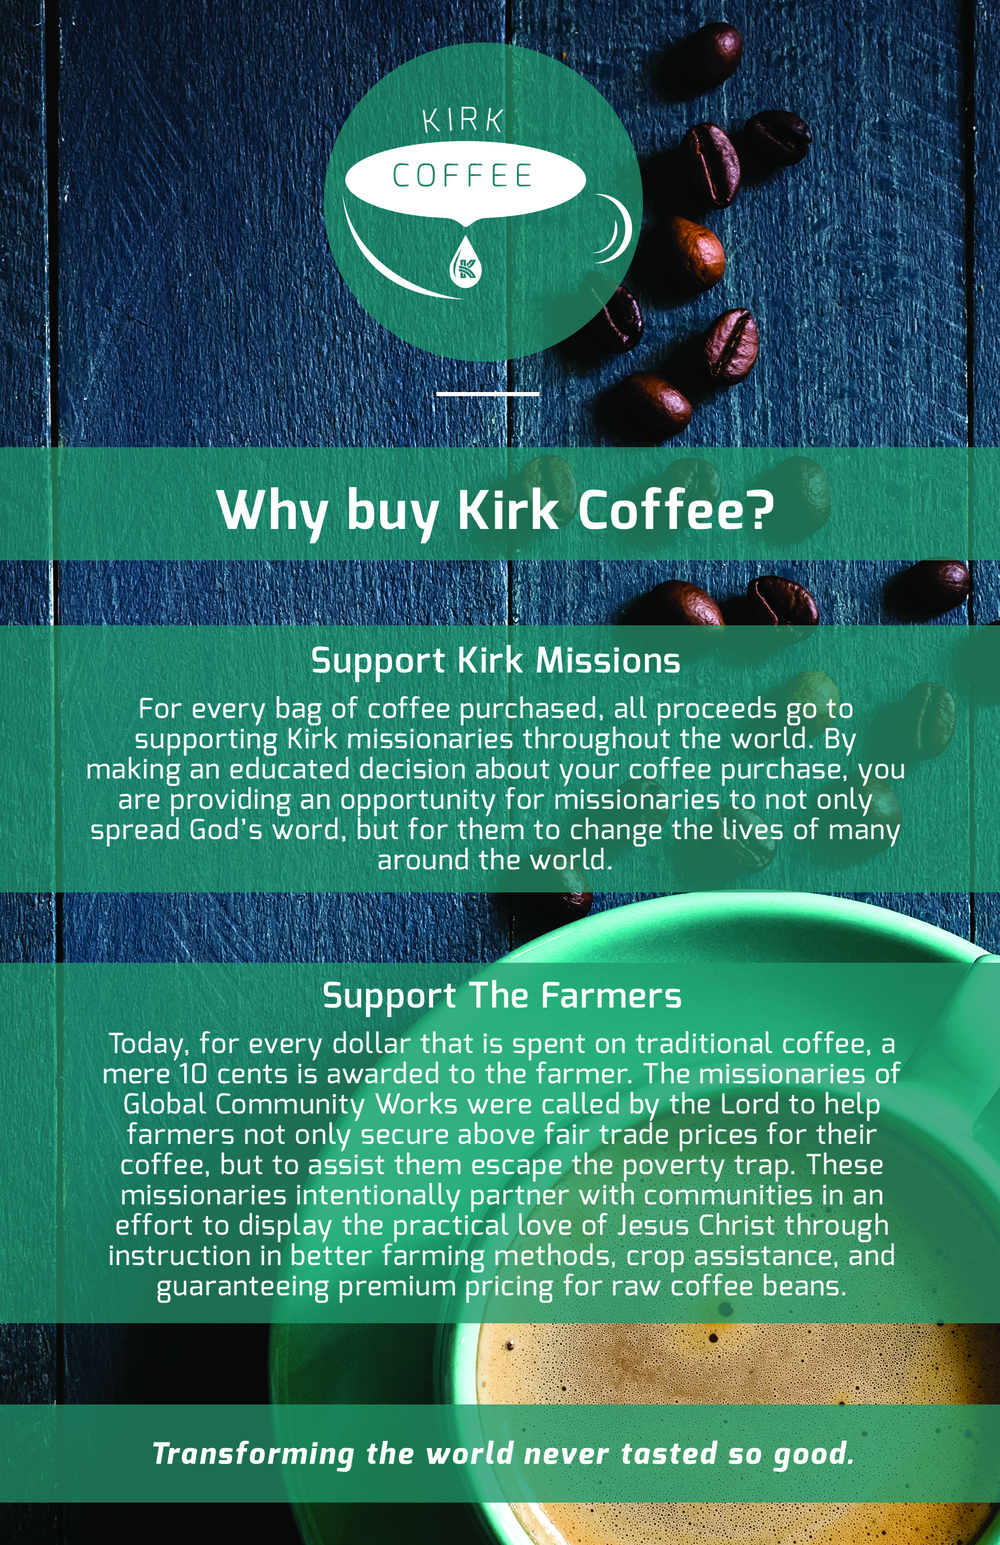 Kirk coffee beans and espresso